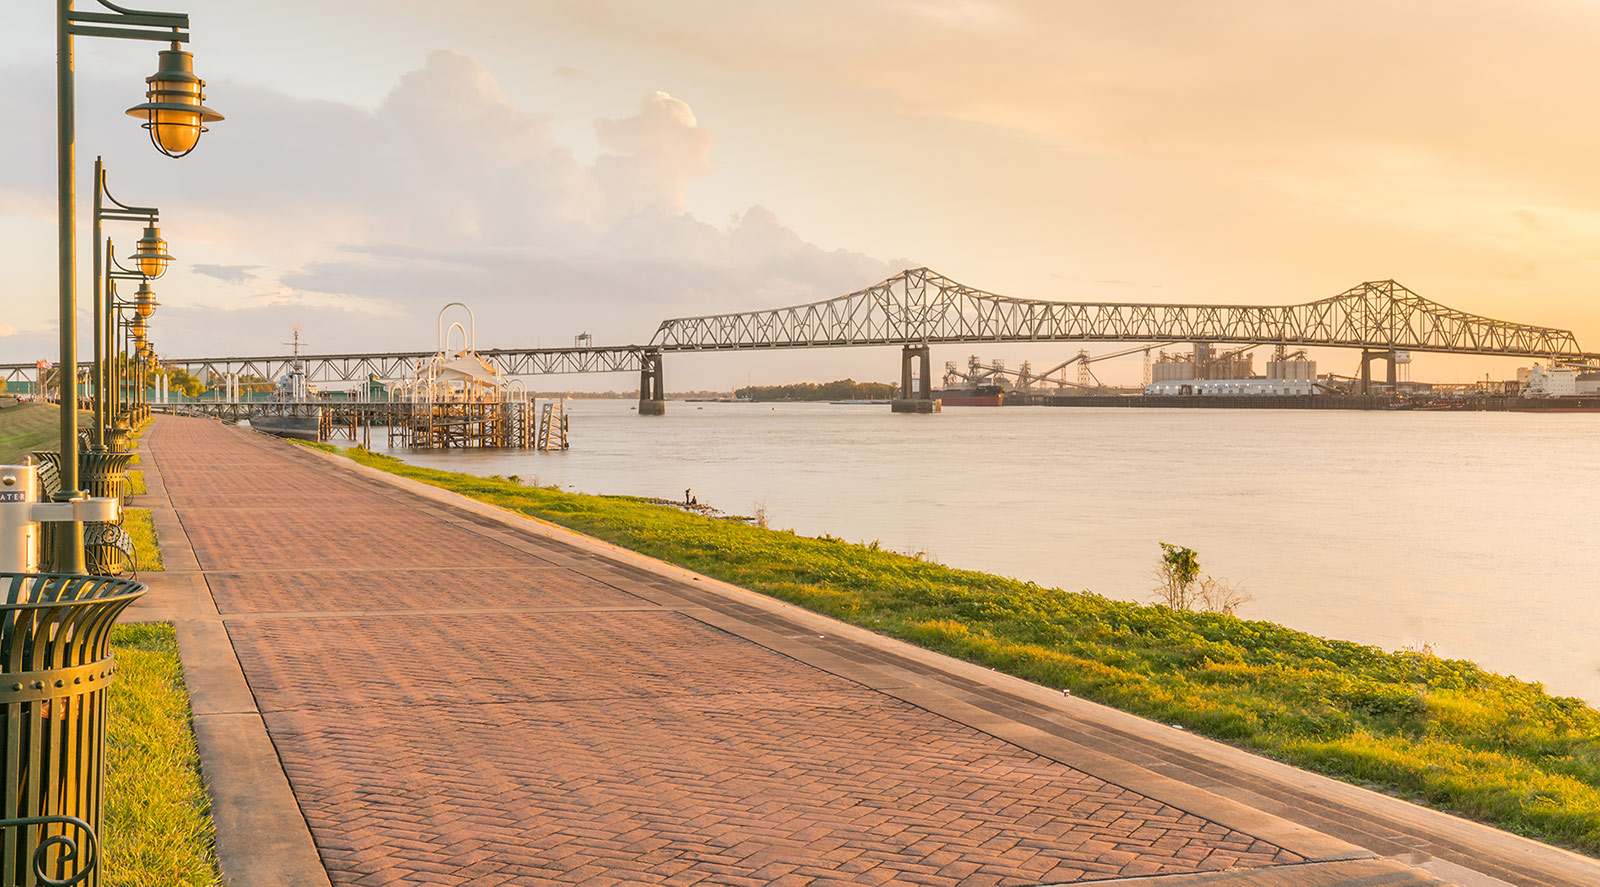 riverfront view of Baton Rouge, LA